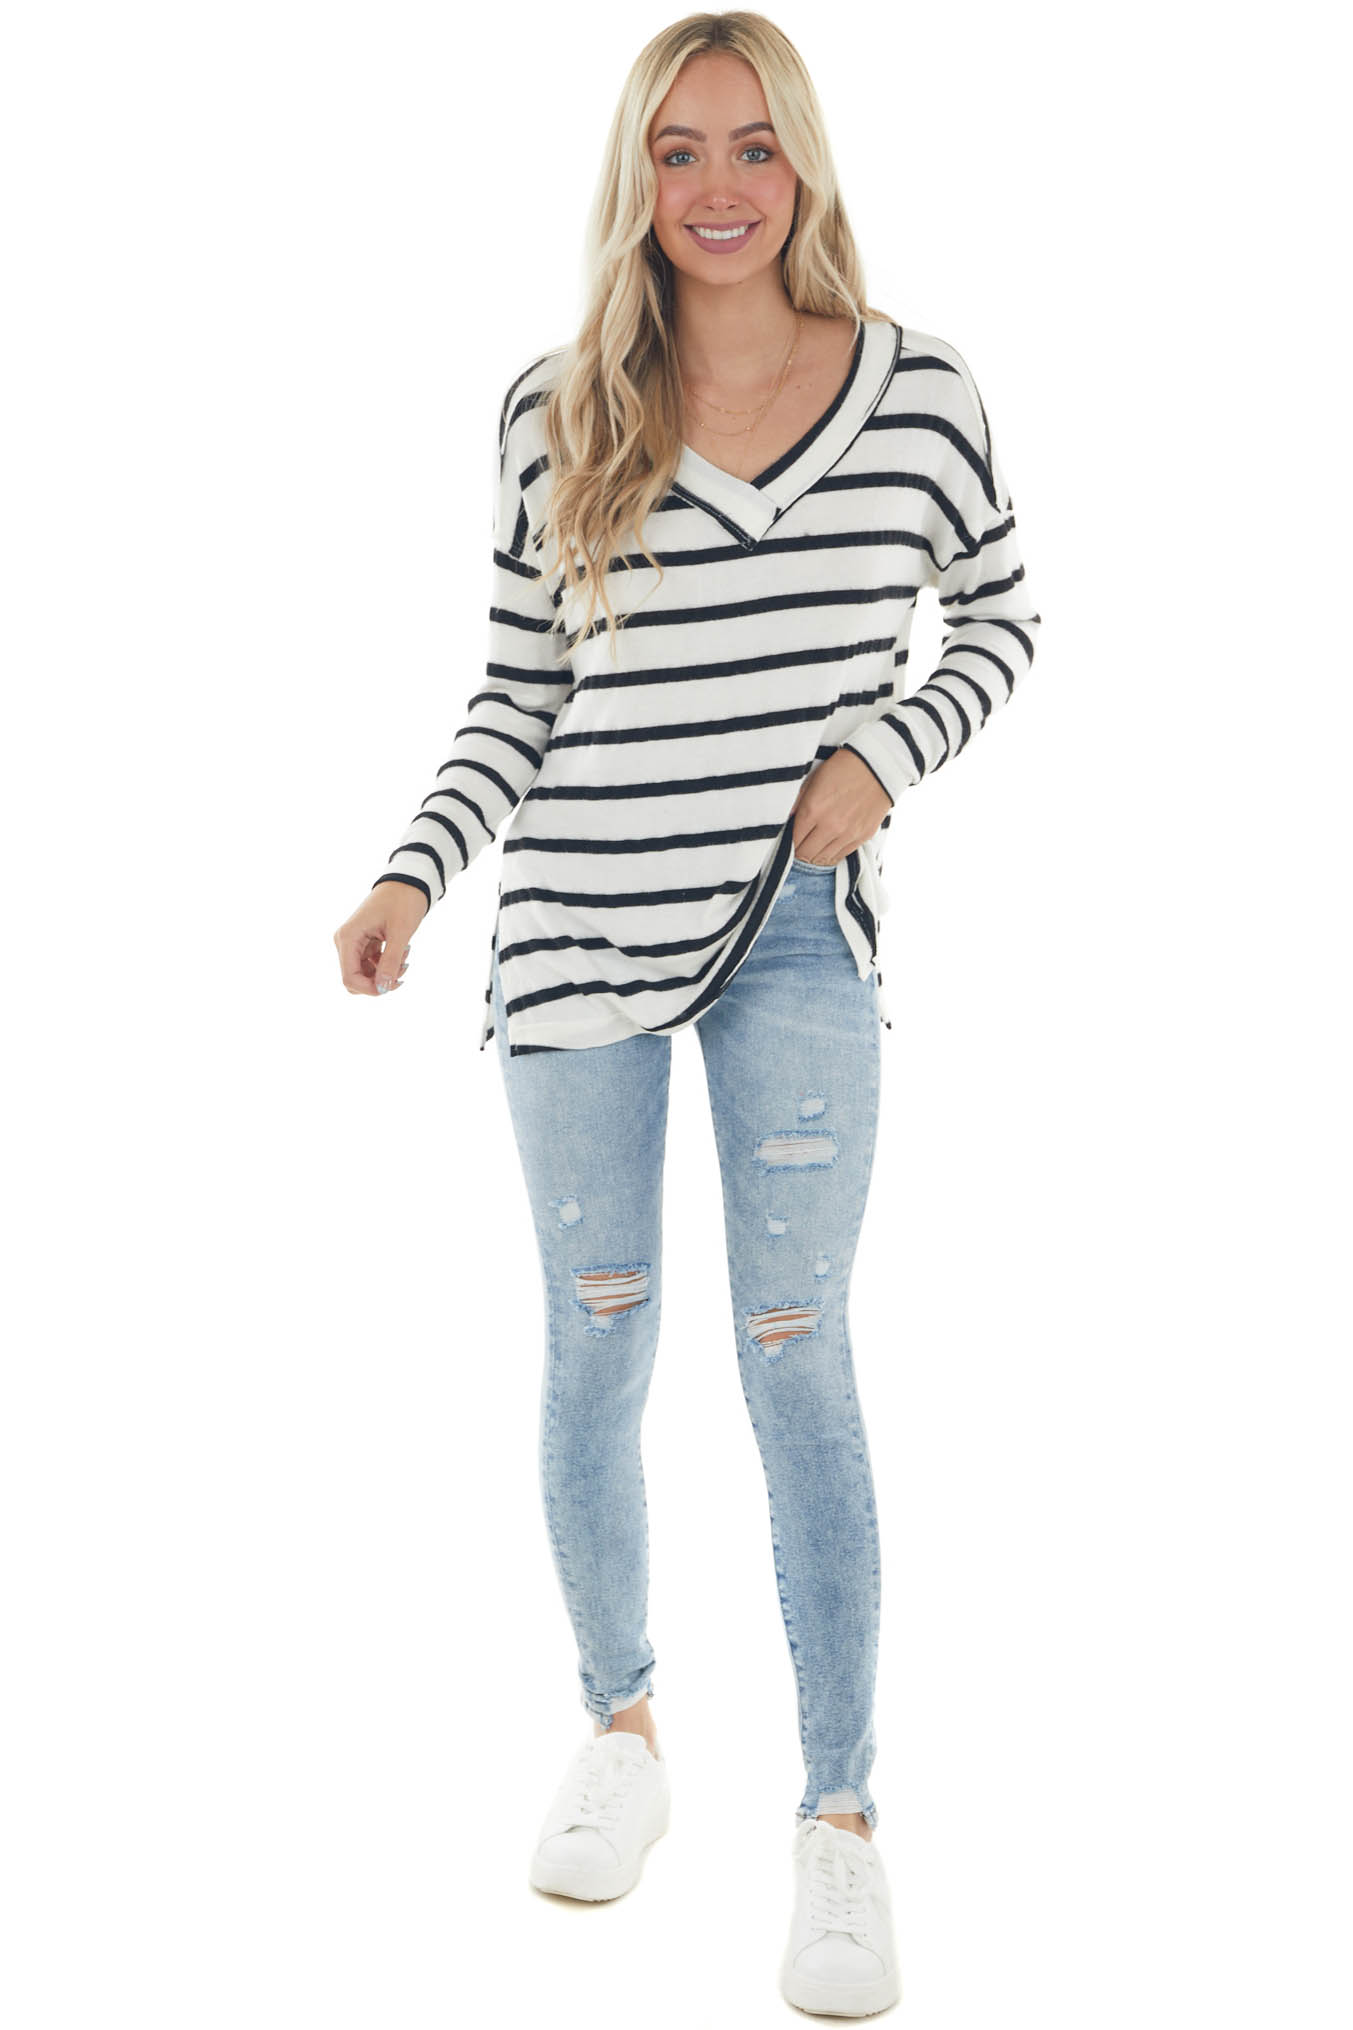 vory and Black Striped Long Sleeve Knit Top